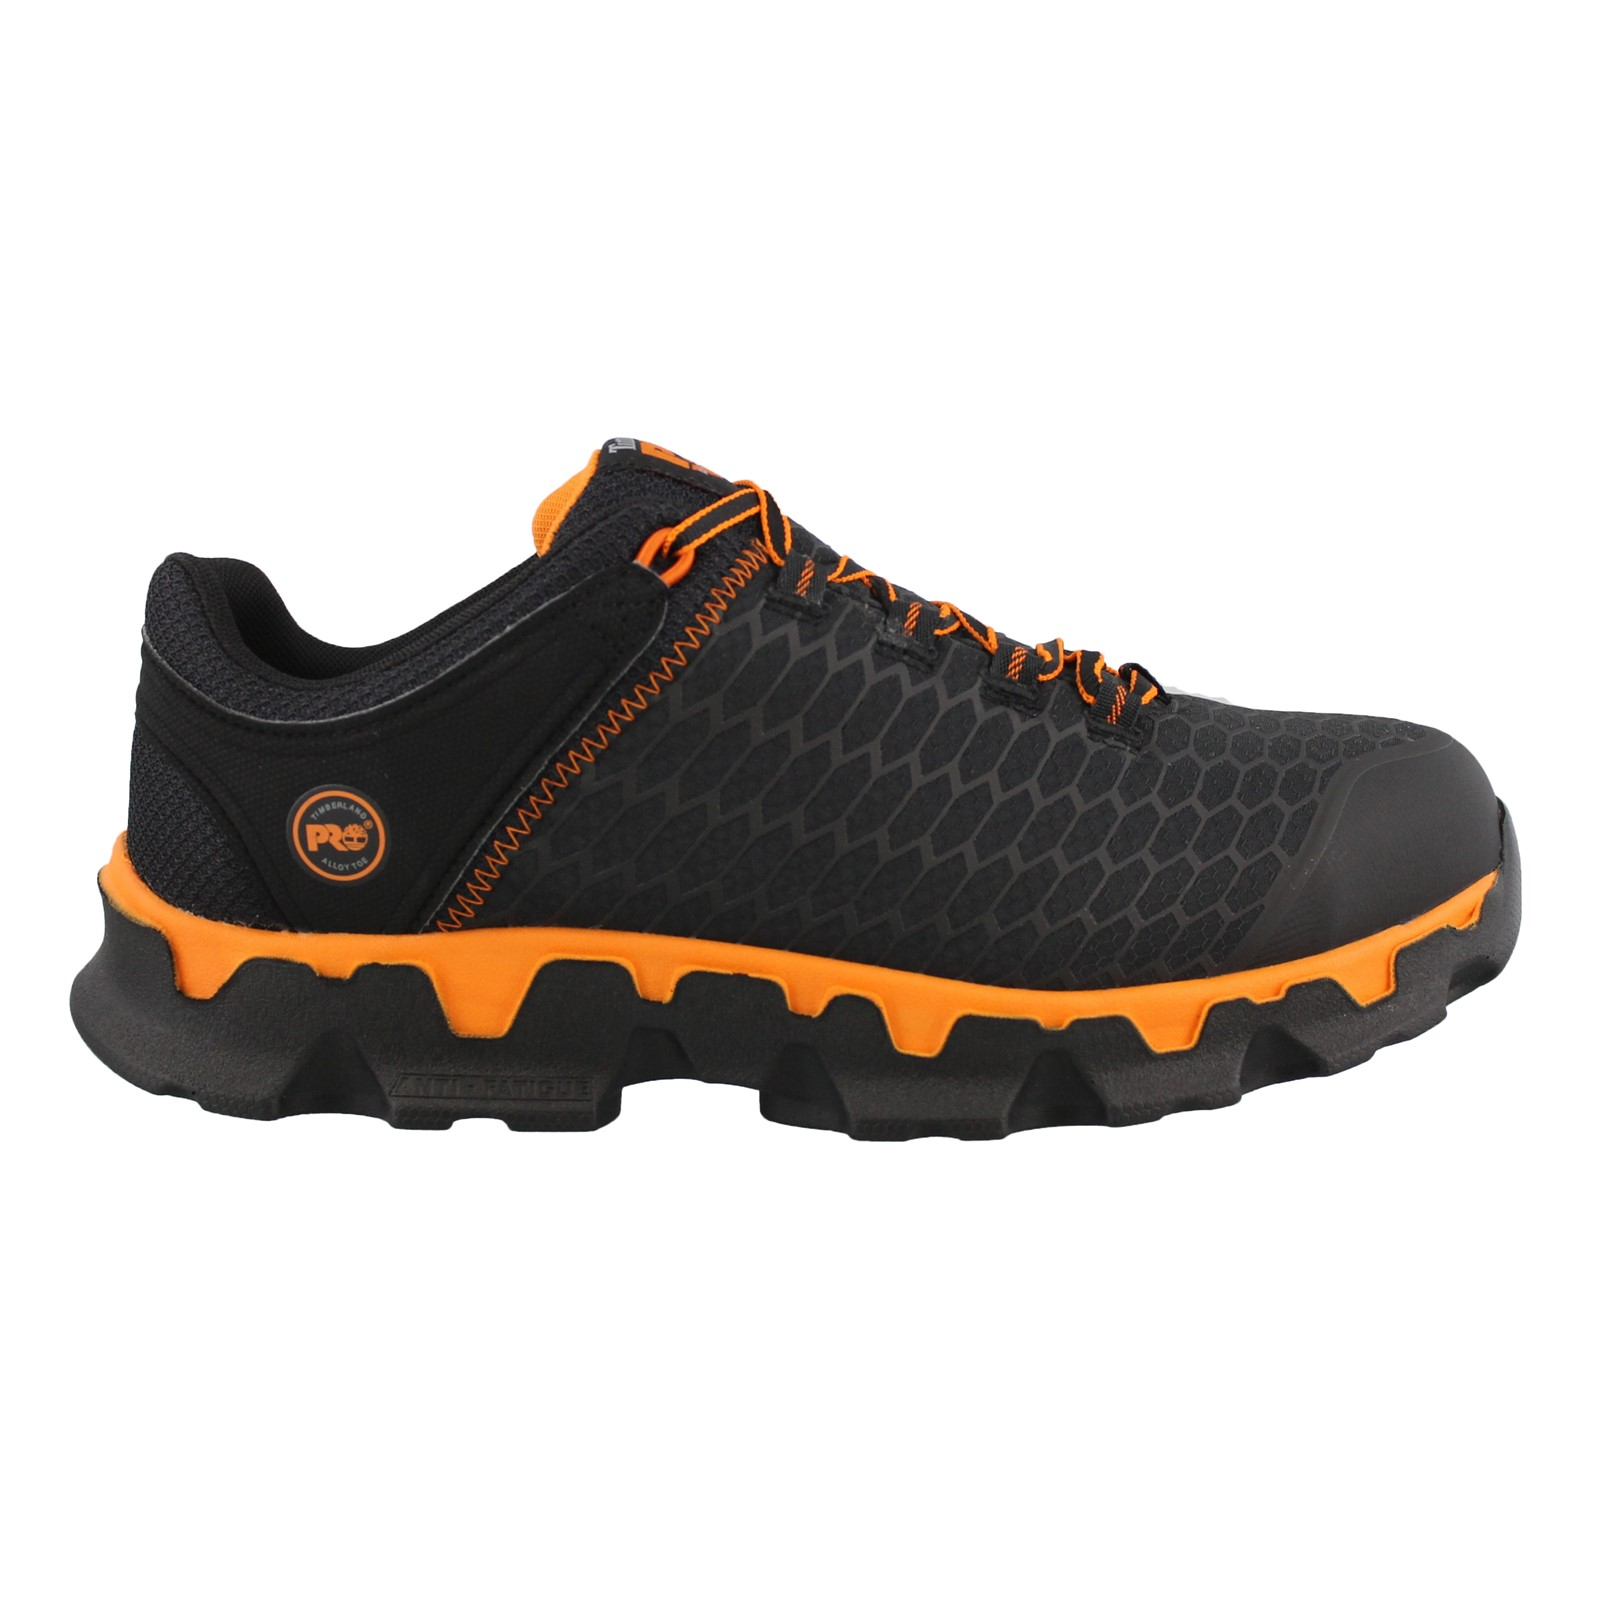 Men's Timberland Pro, Powertrain Alloy EH